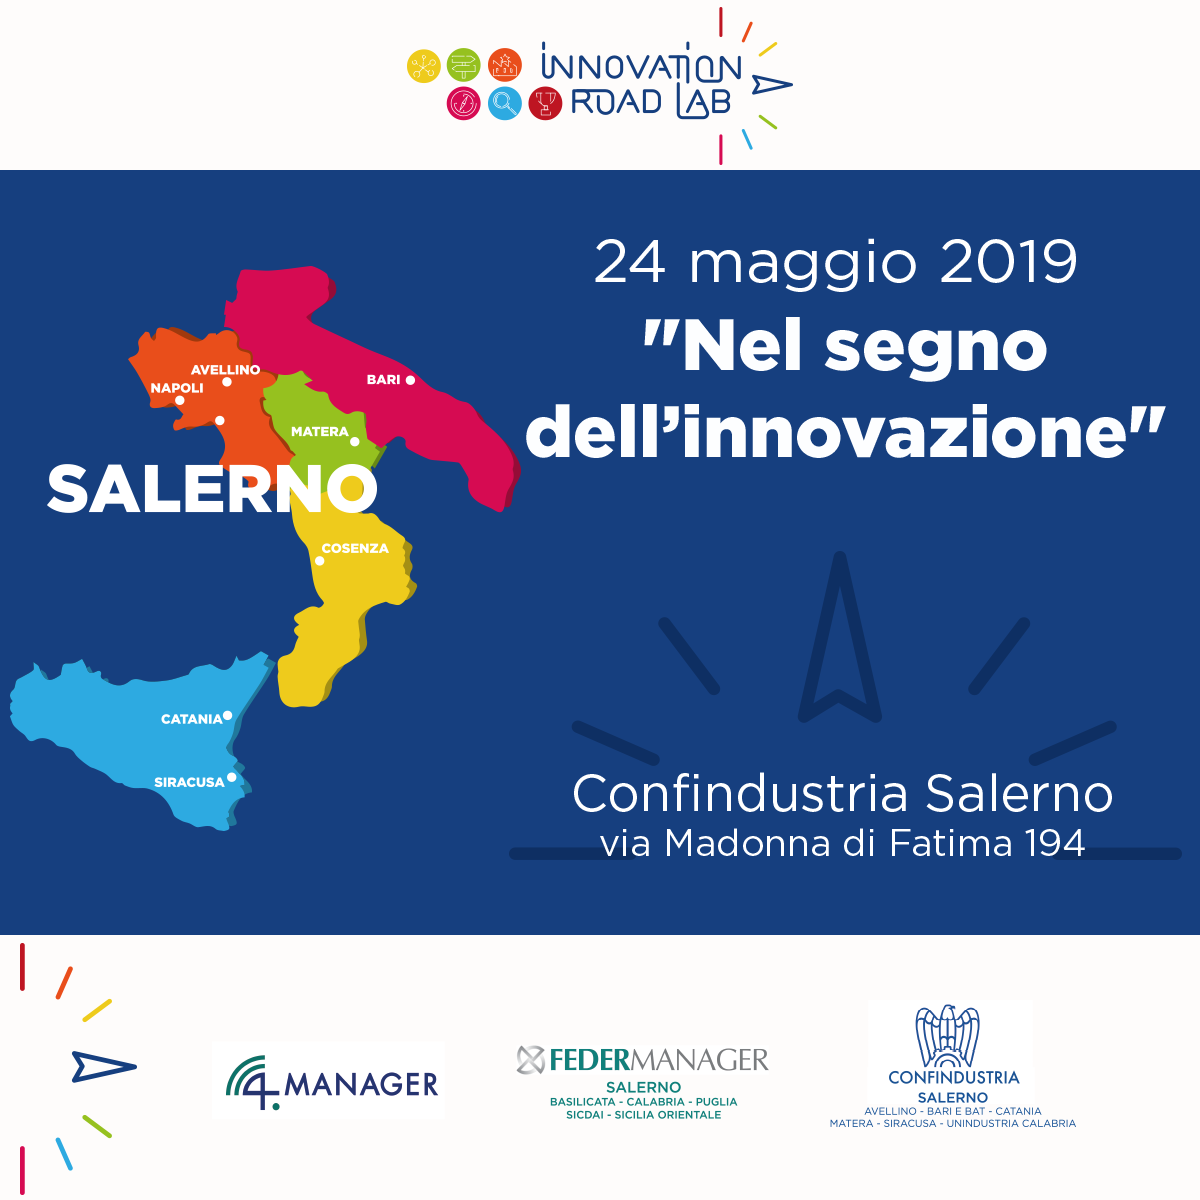 Progetto Innovation Road Lab